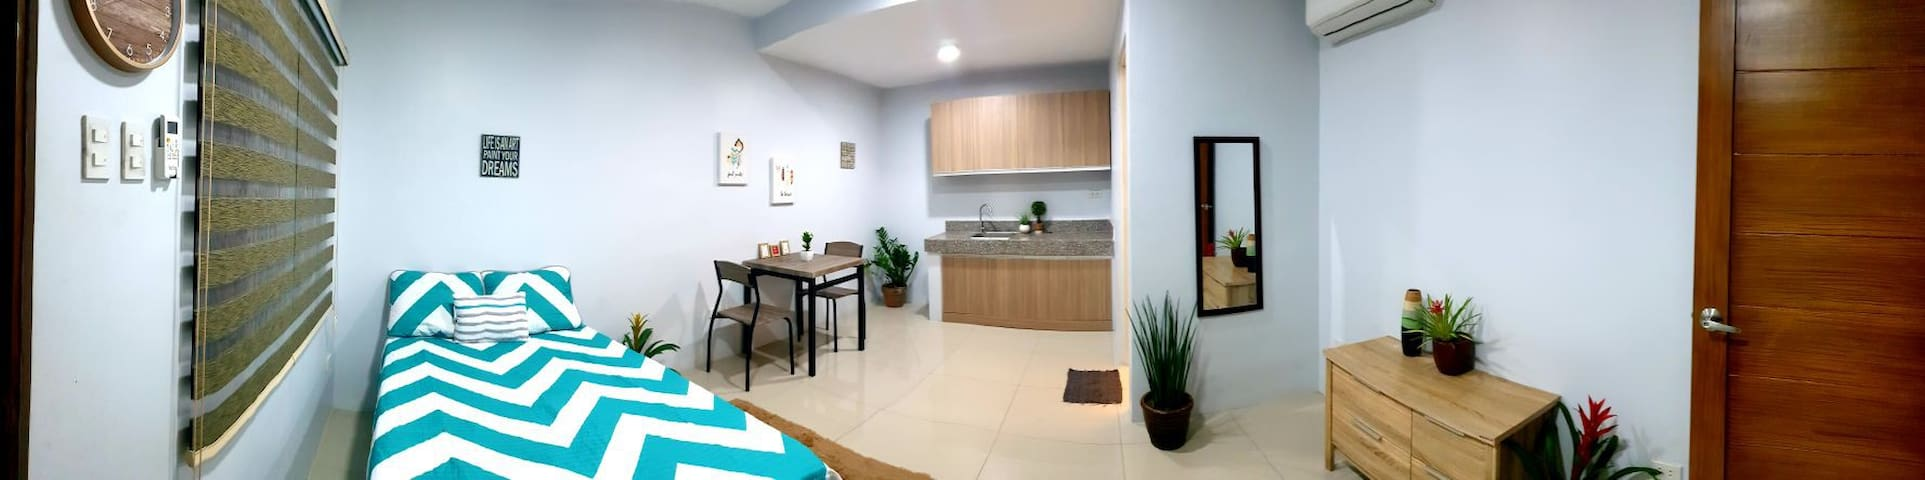 Tuaño's Place 1 bedroom/studio units - Cabuyao 2a7